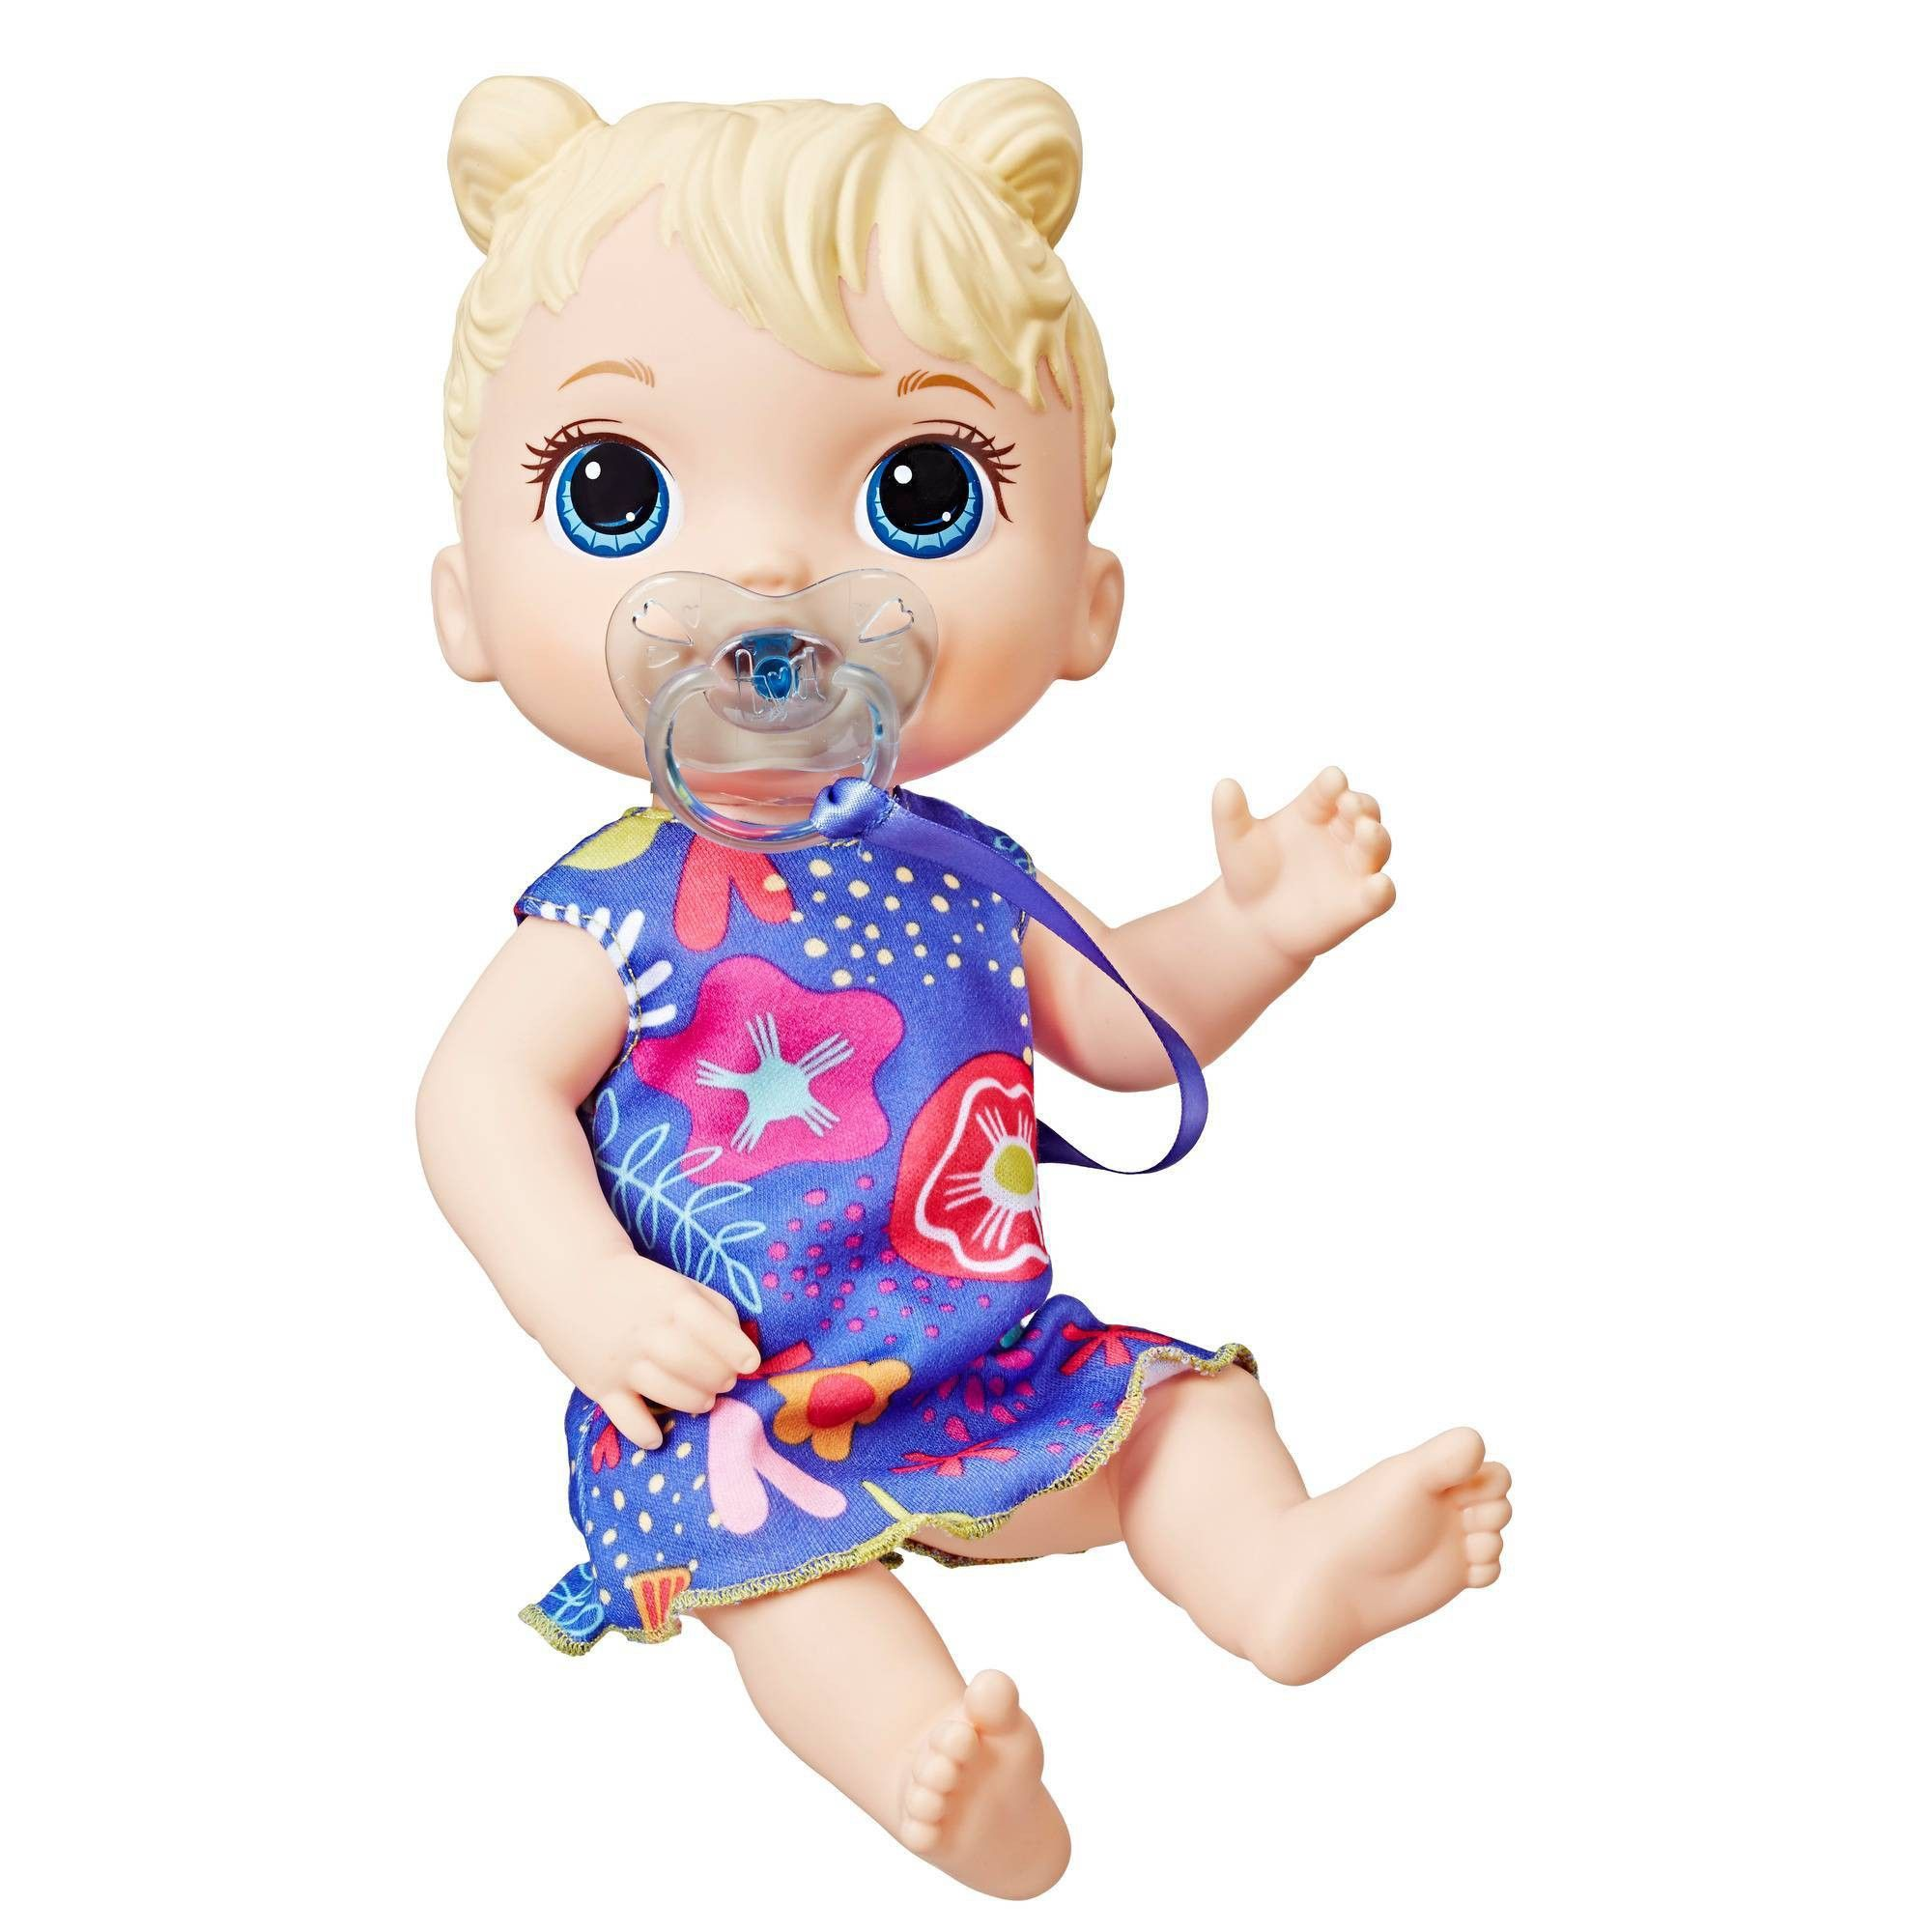 Baby Alive Baby Lil Sounds Interactive Baby Doll Blue Dress Interactive Baby Interactive Baby Dolls Baby Dolls